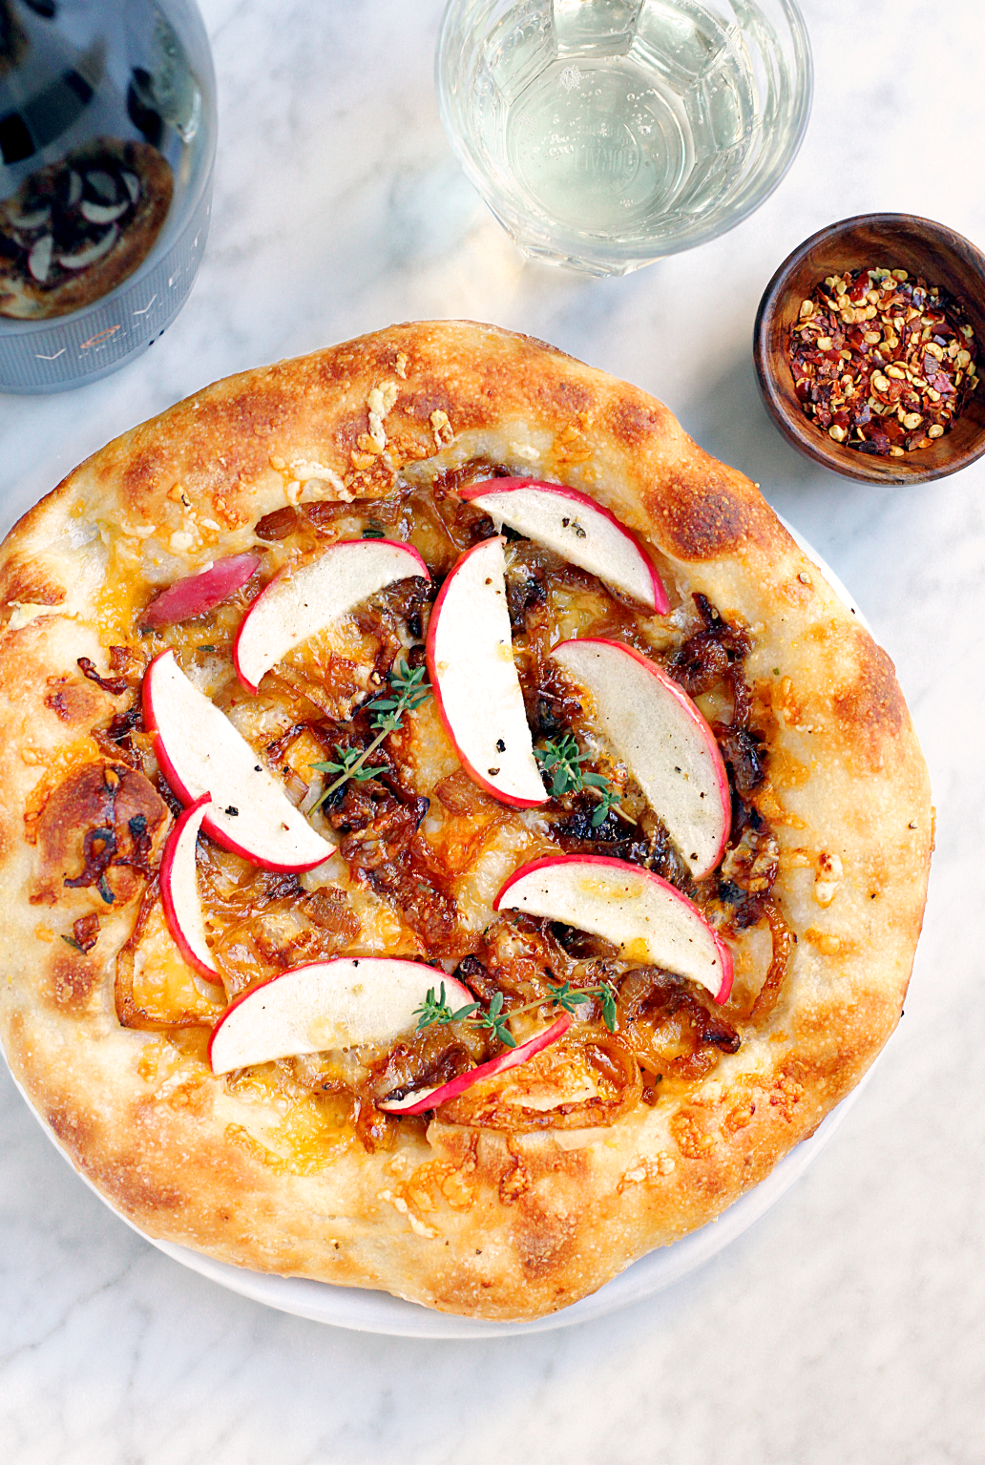 Close-up image of apple and caramelized onion pizza and VOVETI Prosecco.